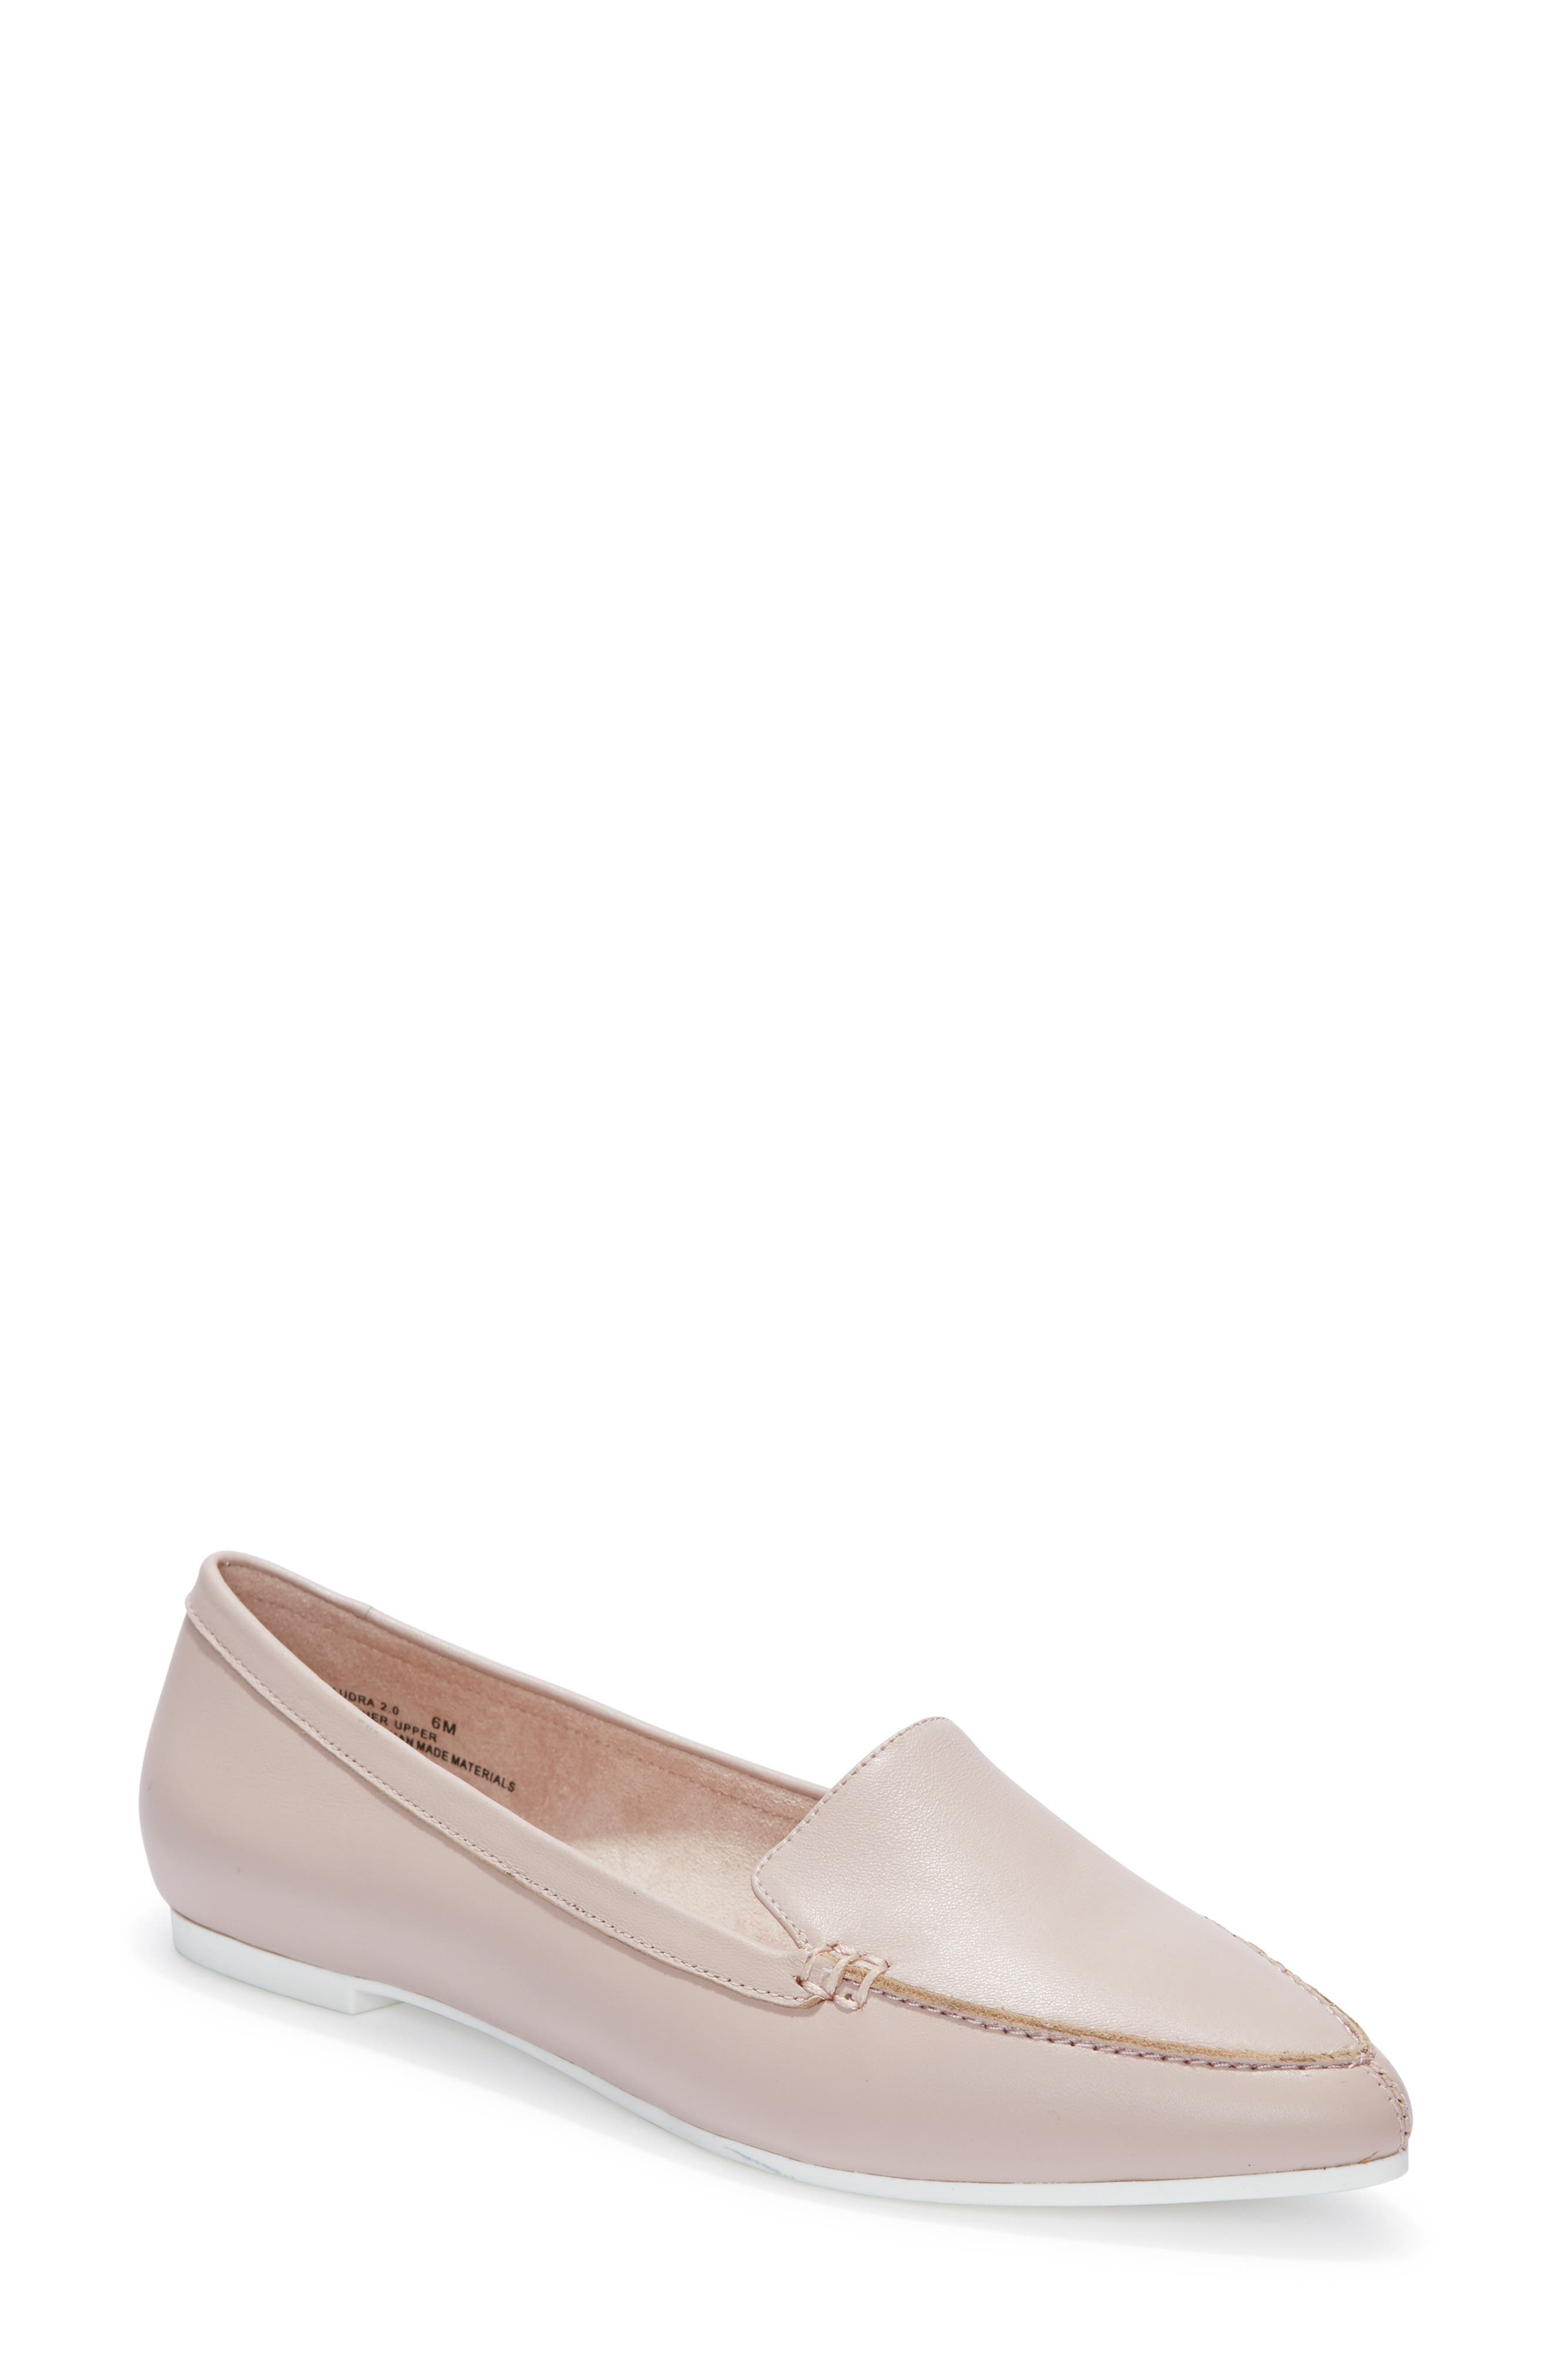 Me Too Audra Loafer Flat, Pink